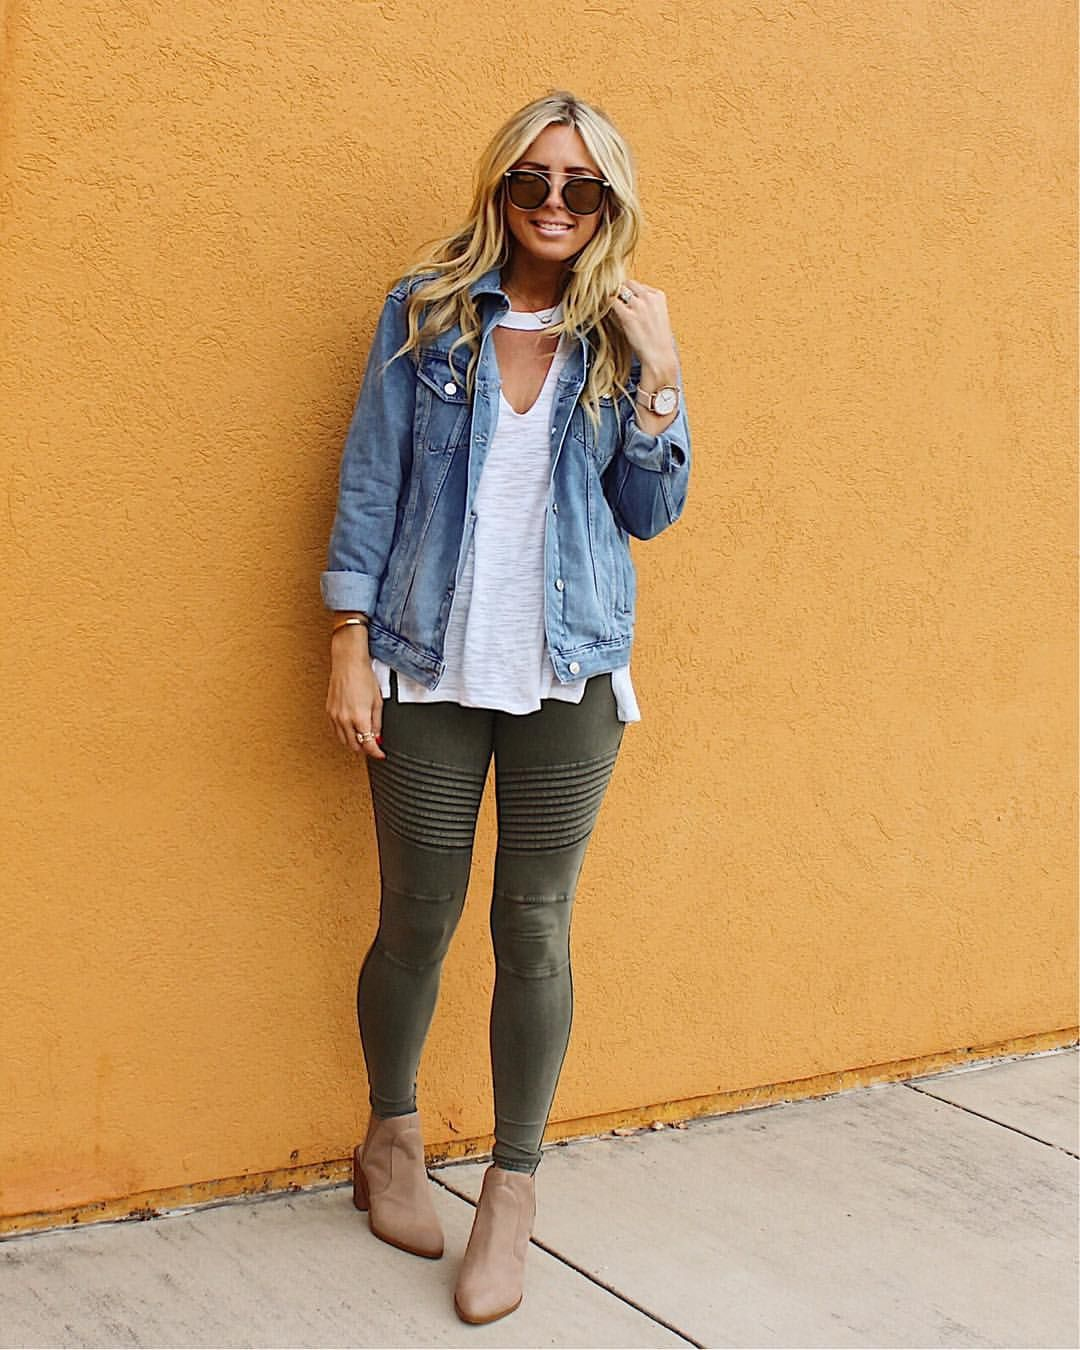 b6772676c3d86 what to wear with moto leggings 50+ best outfits - Page 74 of 94 ...